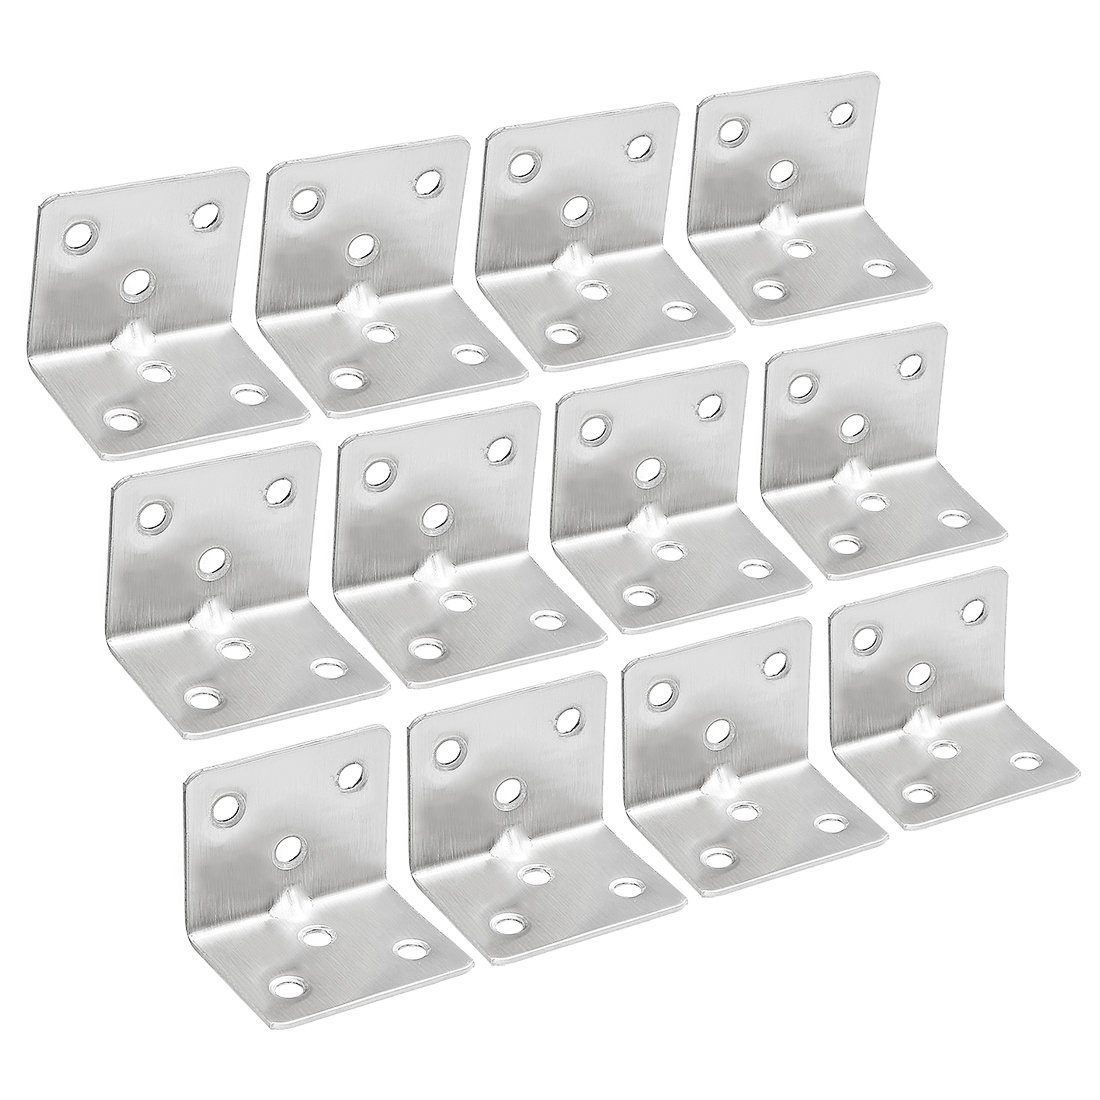 sourcingmap 30pcs 28mmx28mmx36mm Stainless Steel Corner Brace Joint L Shape Right Angle Brackets Fastener